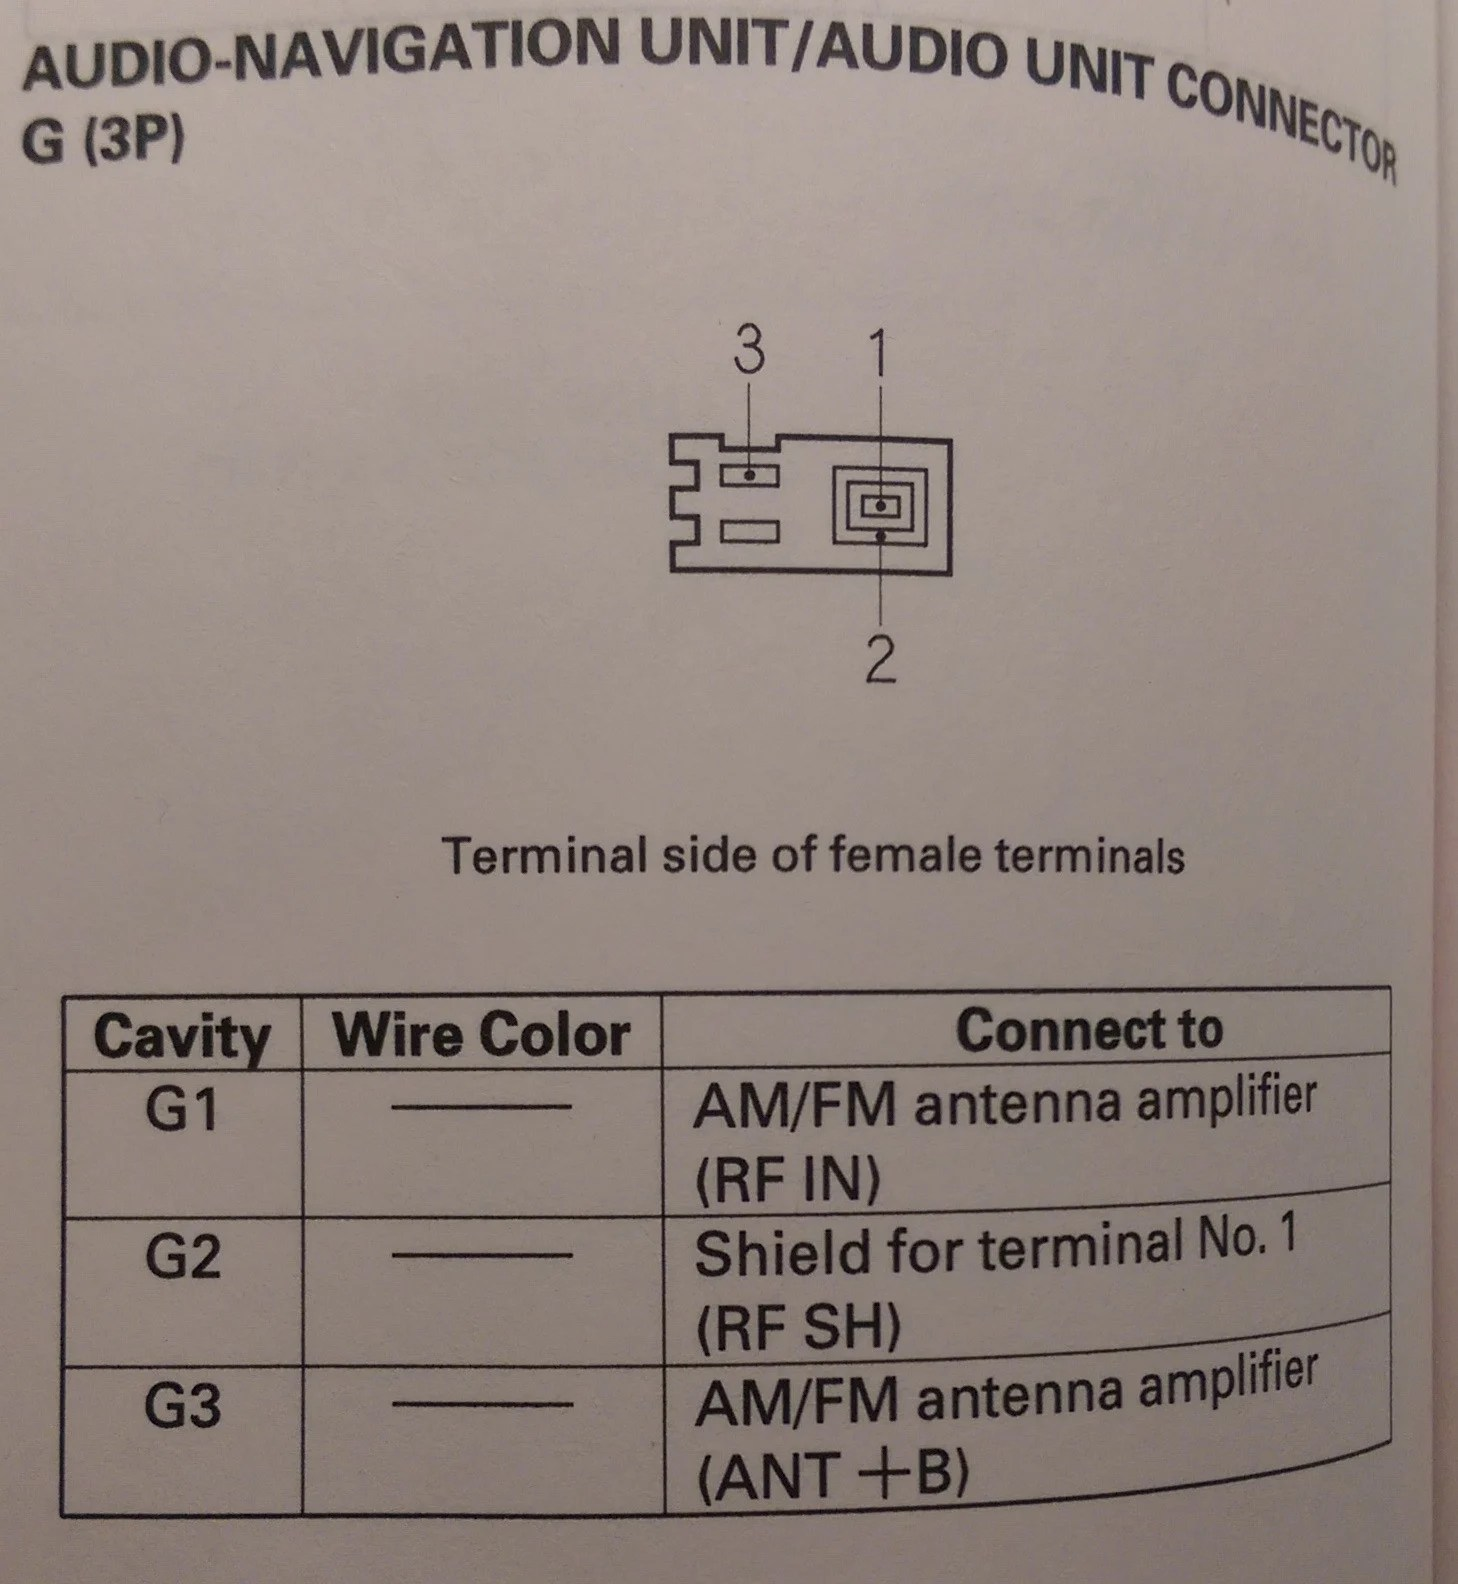 Upgrade Your Stereo System This S2000 Stereo Wiring Diagram Can Help